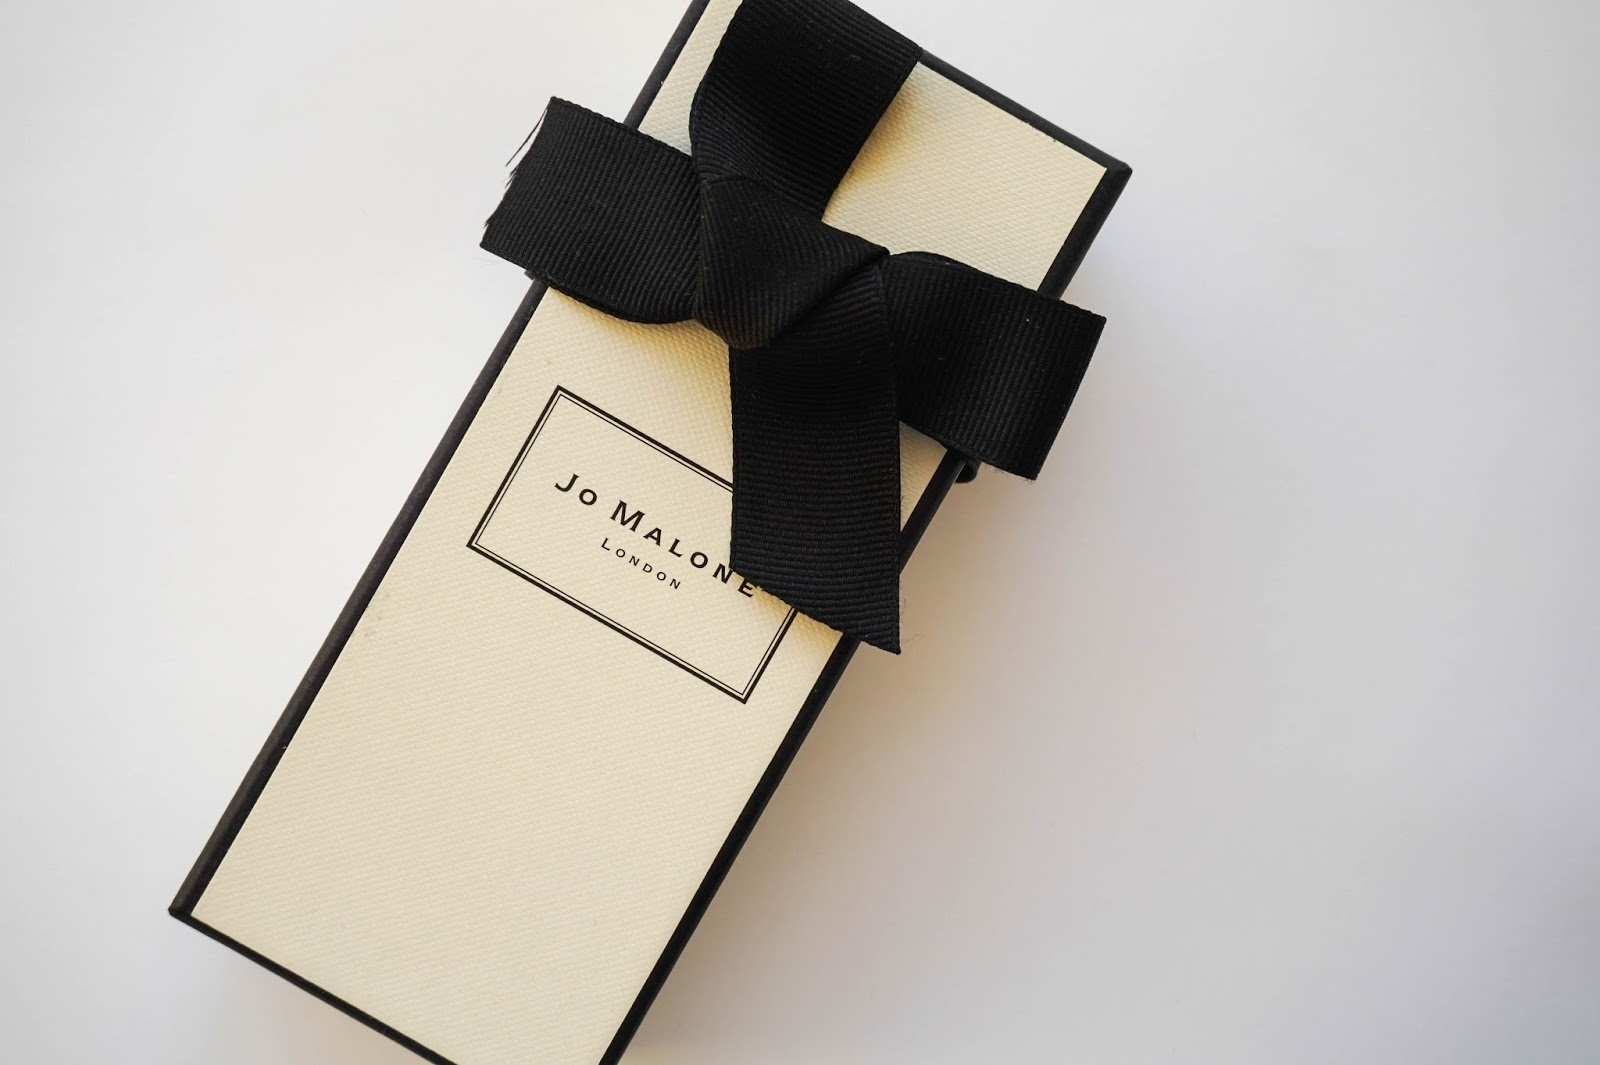 Jo Malone Nectarine & Blossom Honey